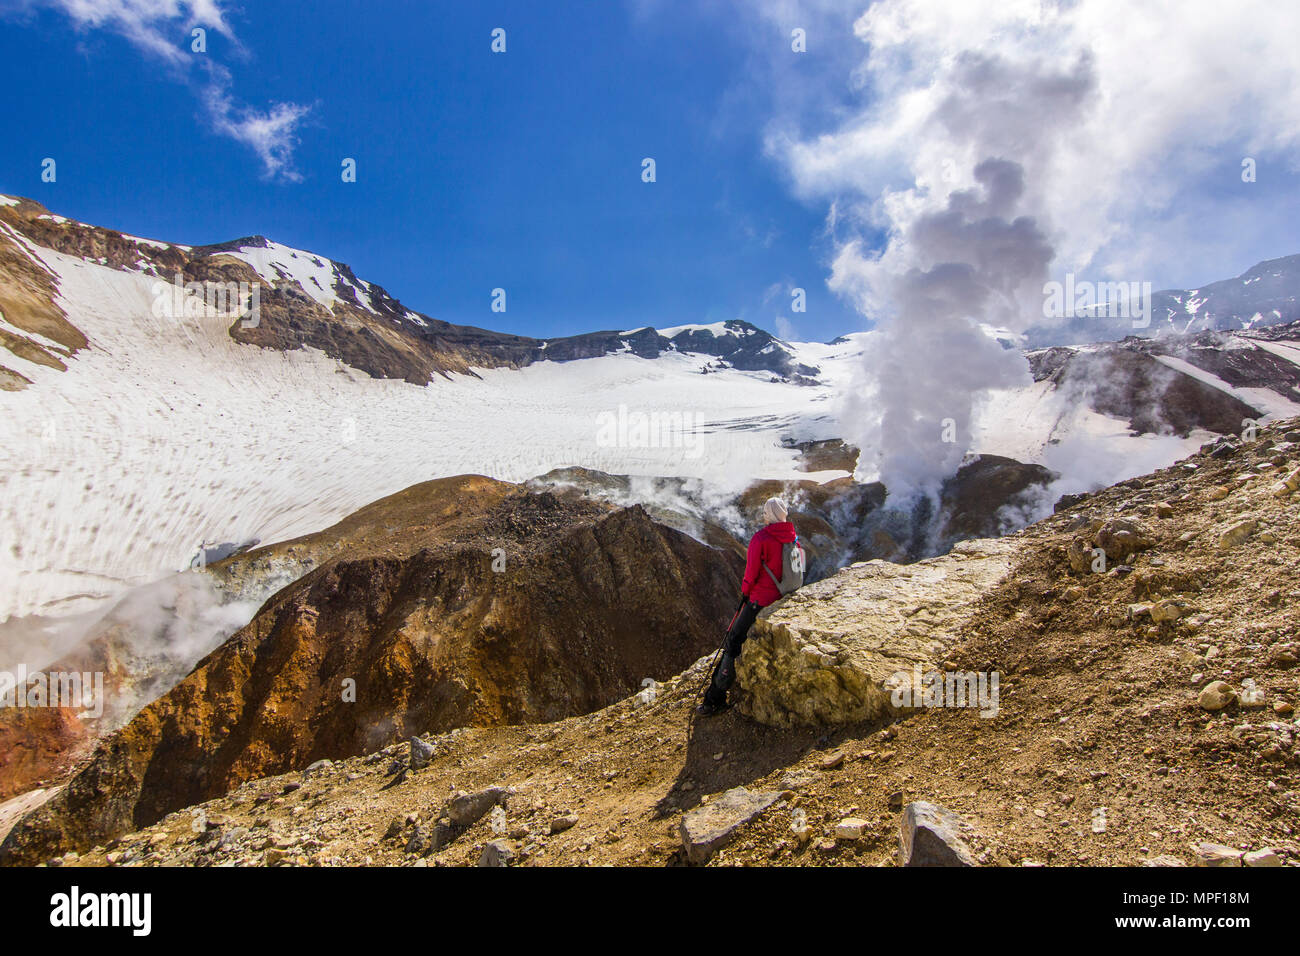 girl sitting near steaming crater of active volcano covered by snow - Stock Image